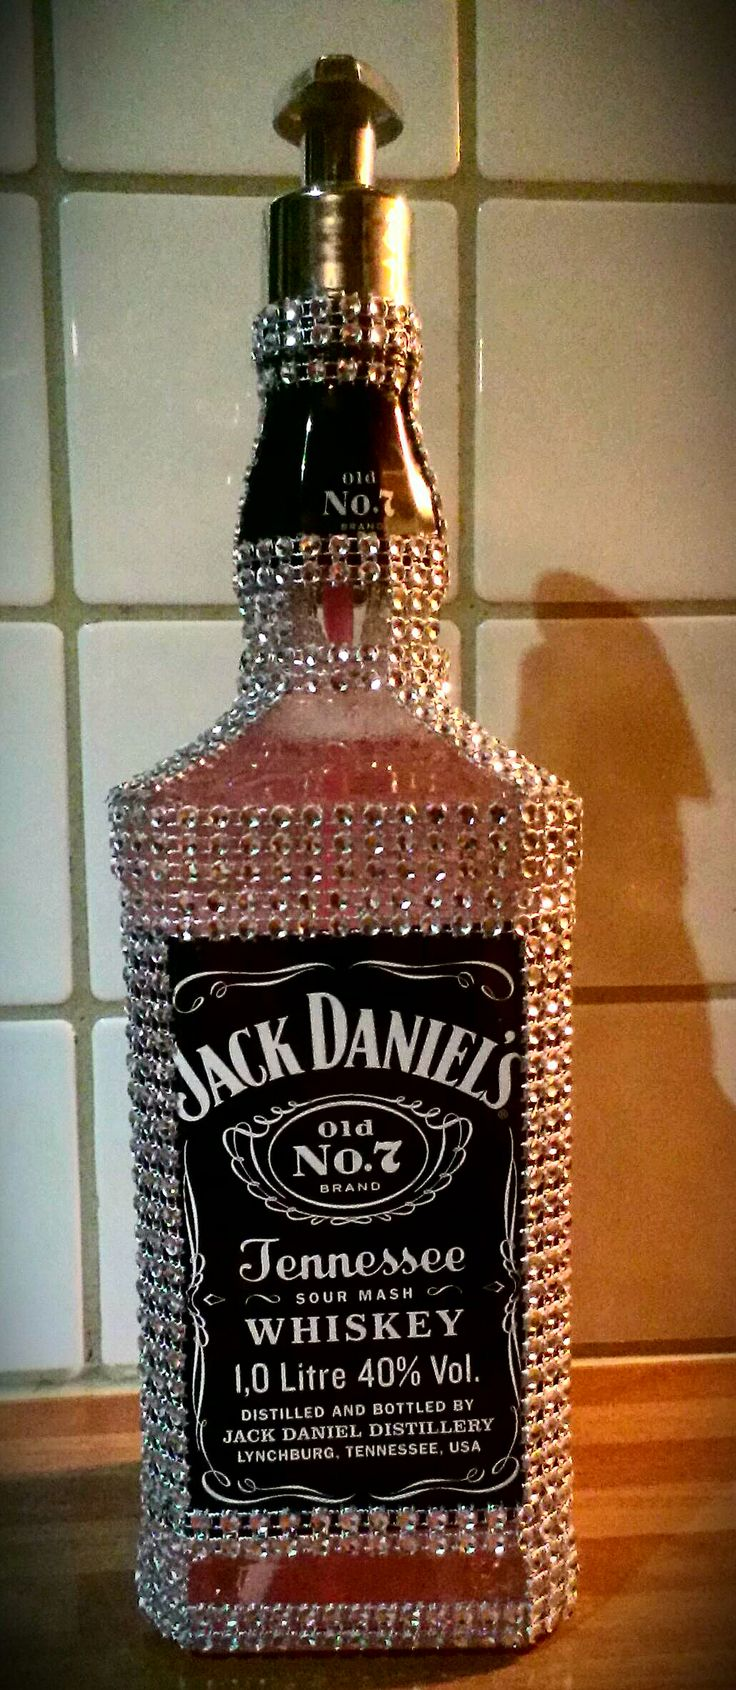 Homemade Jack Daniels bling bling soap dispenser. https://www.facebook.com/blingblingstuff